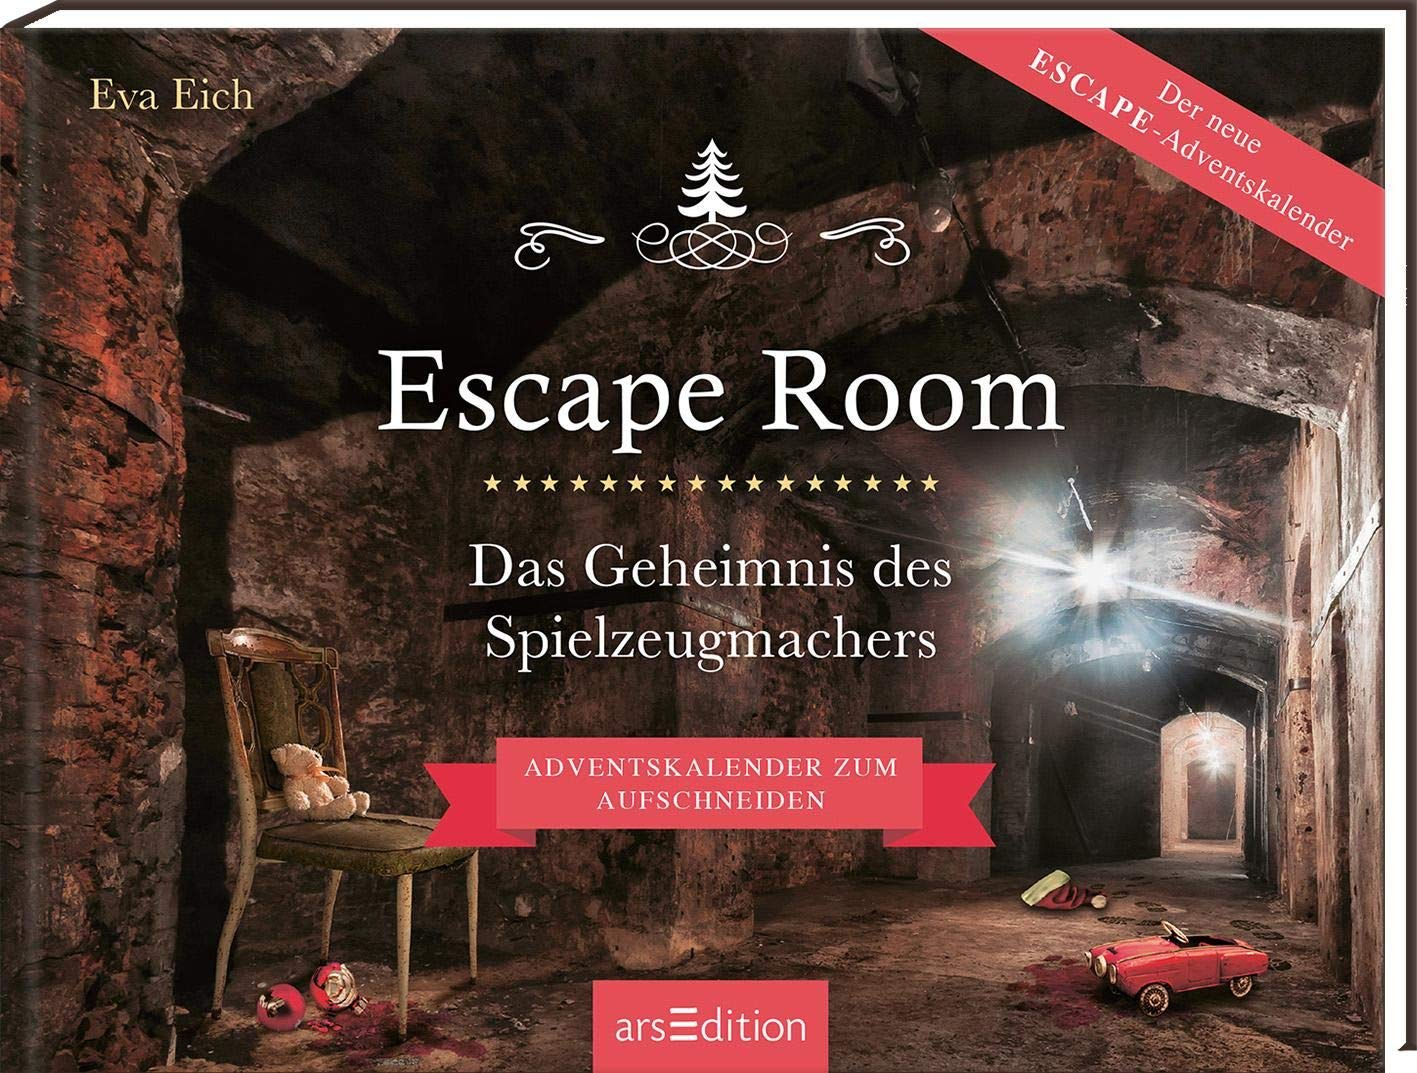 Escape Room-Adventskalender 2020